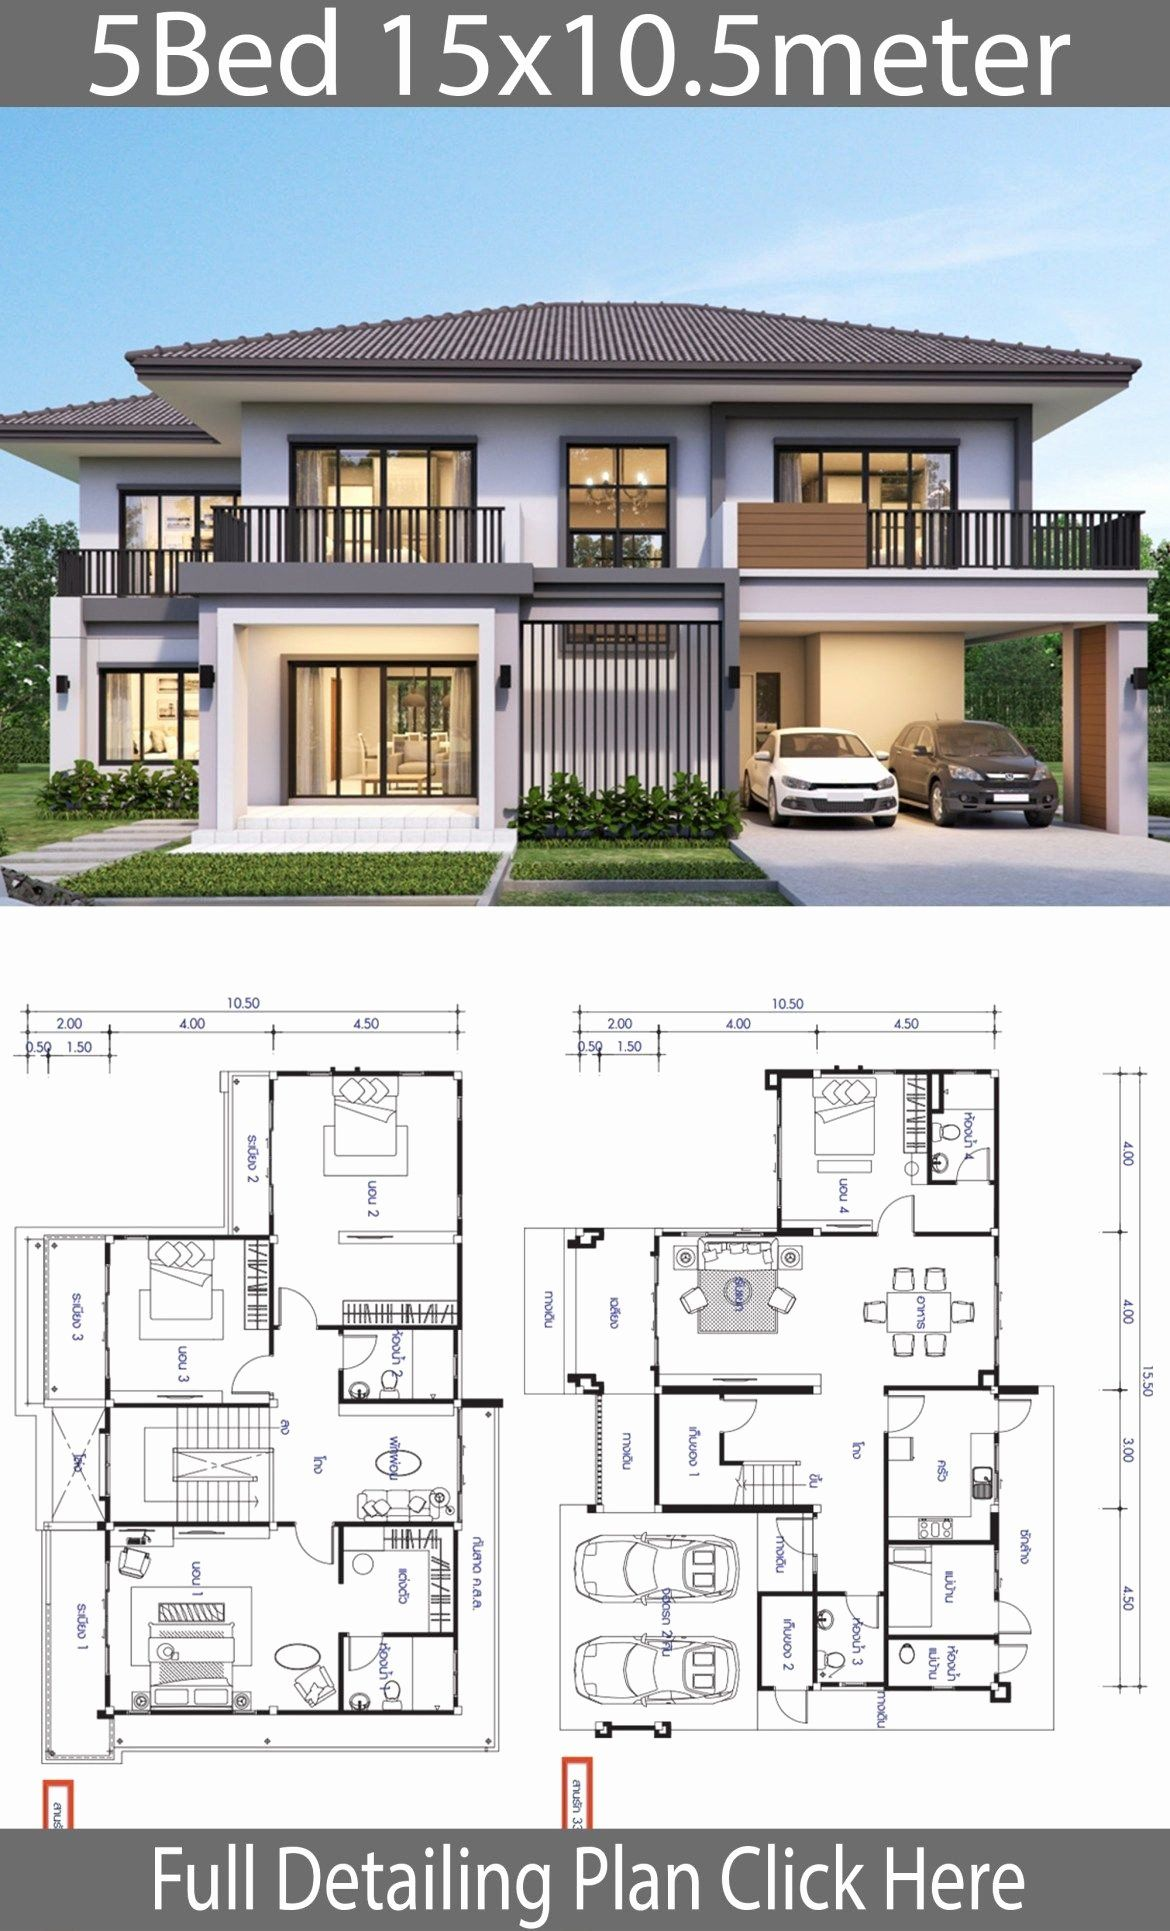 5 Br House Plans Lovely House Design Plan 15 5x10 5m With 5 Bedrooms Architectural House Plans Bungalow House Plans Bungalow House Design